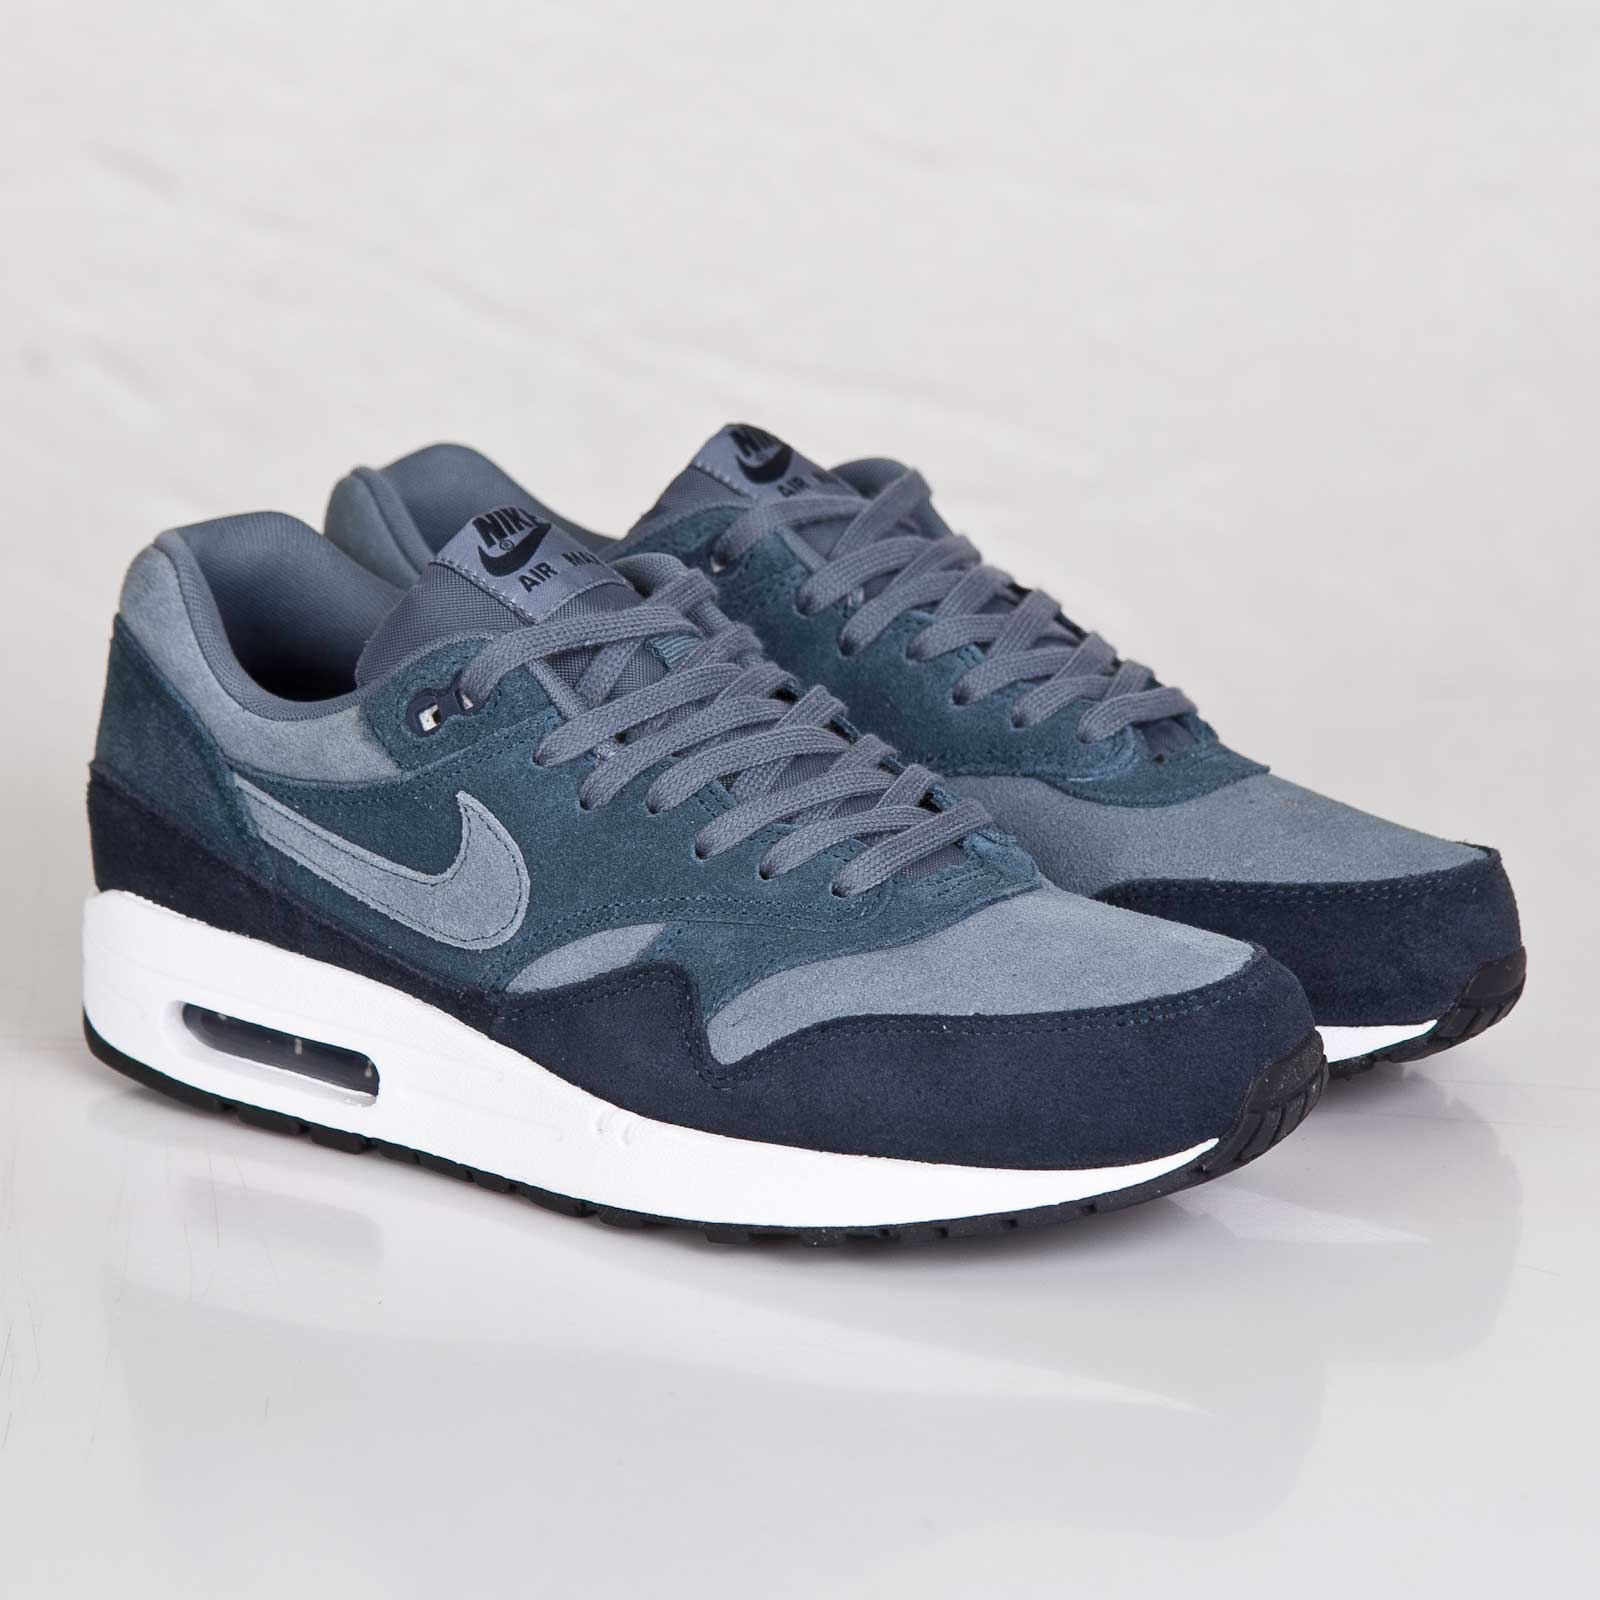 quality design b2e6f 4913c Nike Air Max 1 Essential LTR